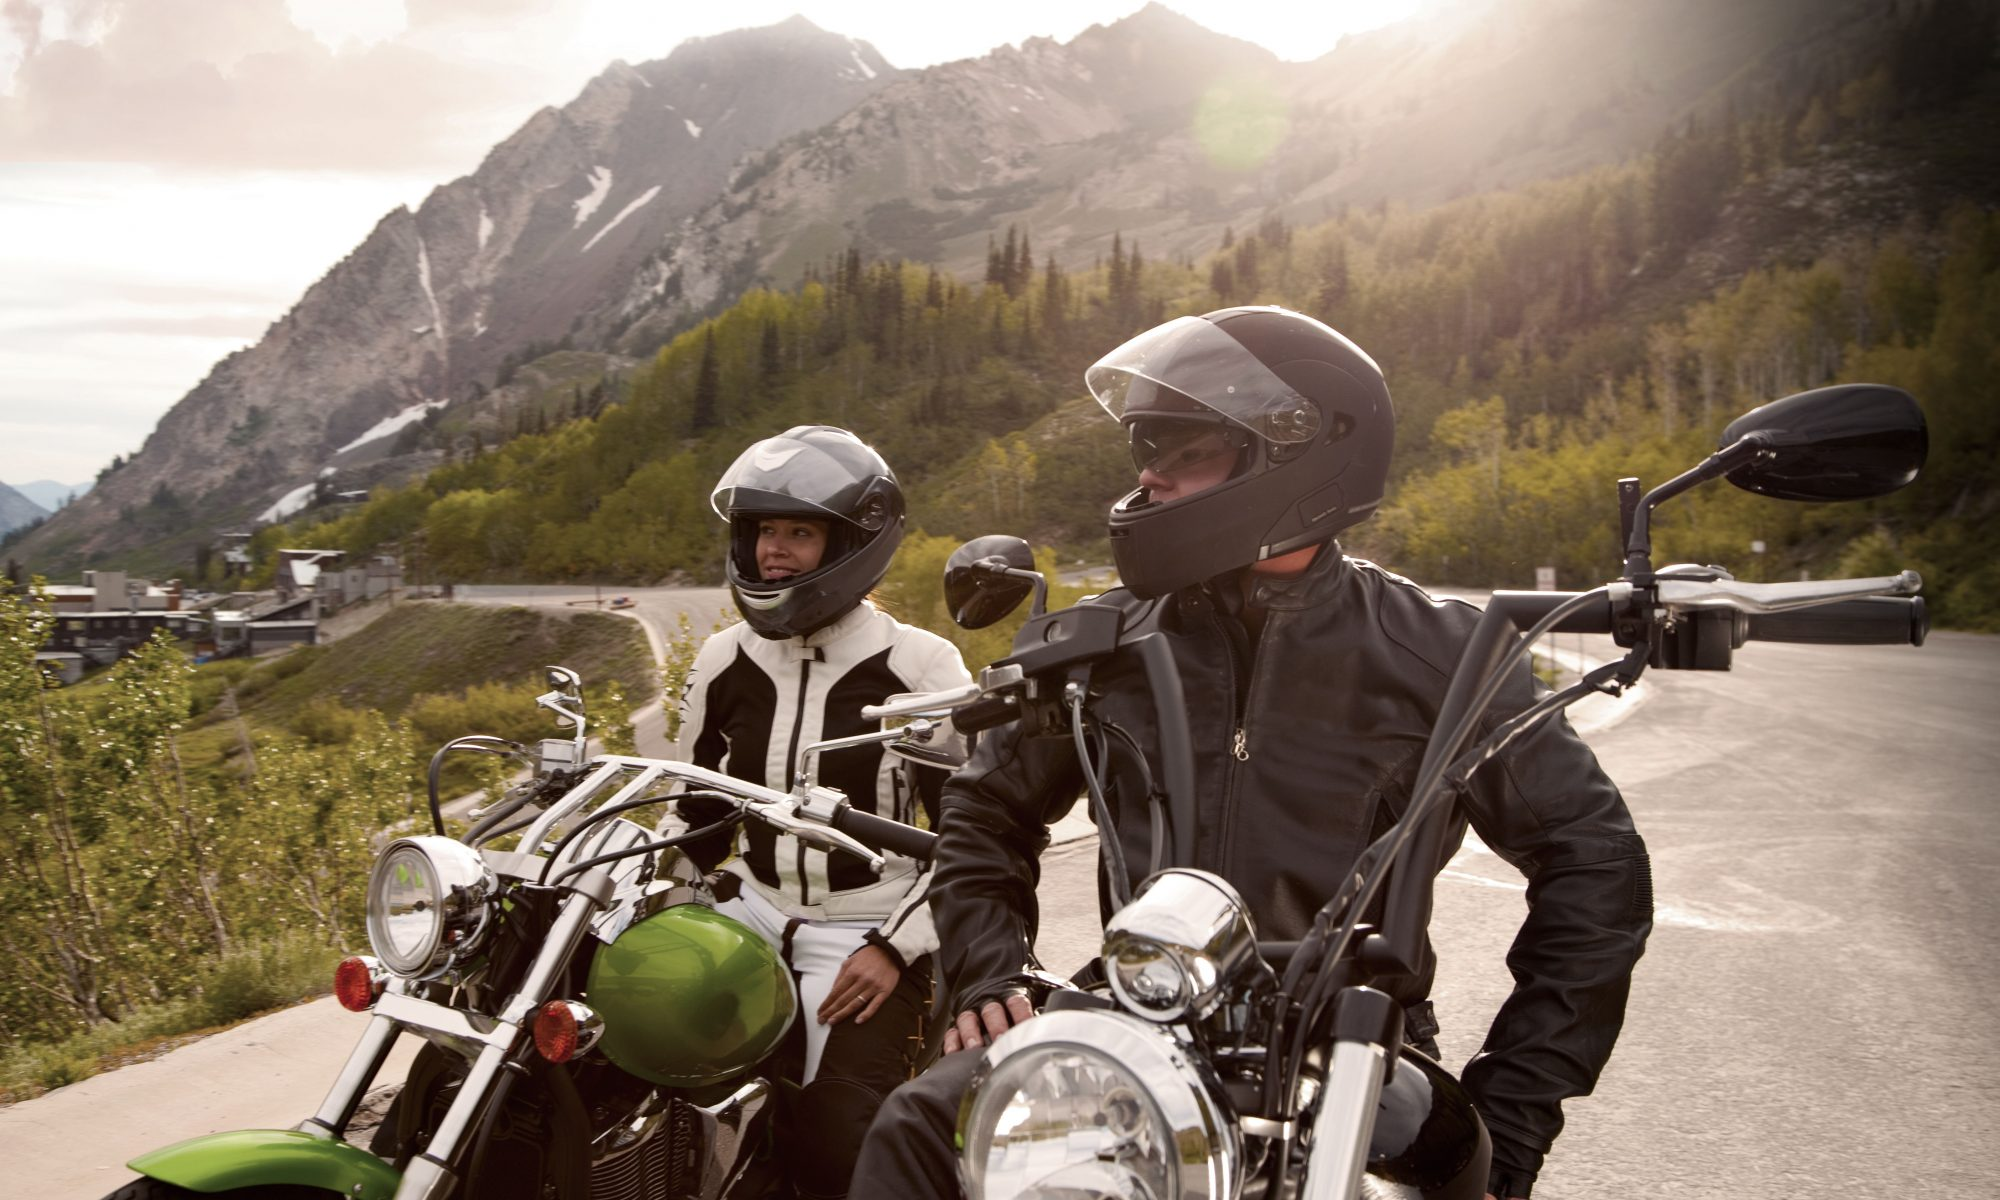 A man and a woman on separate motocycles are stopped on a mountains road